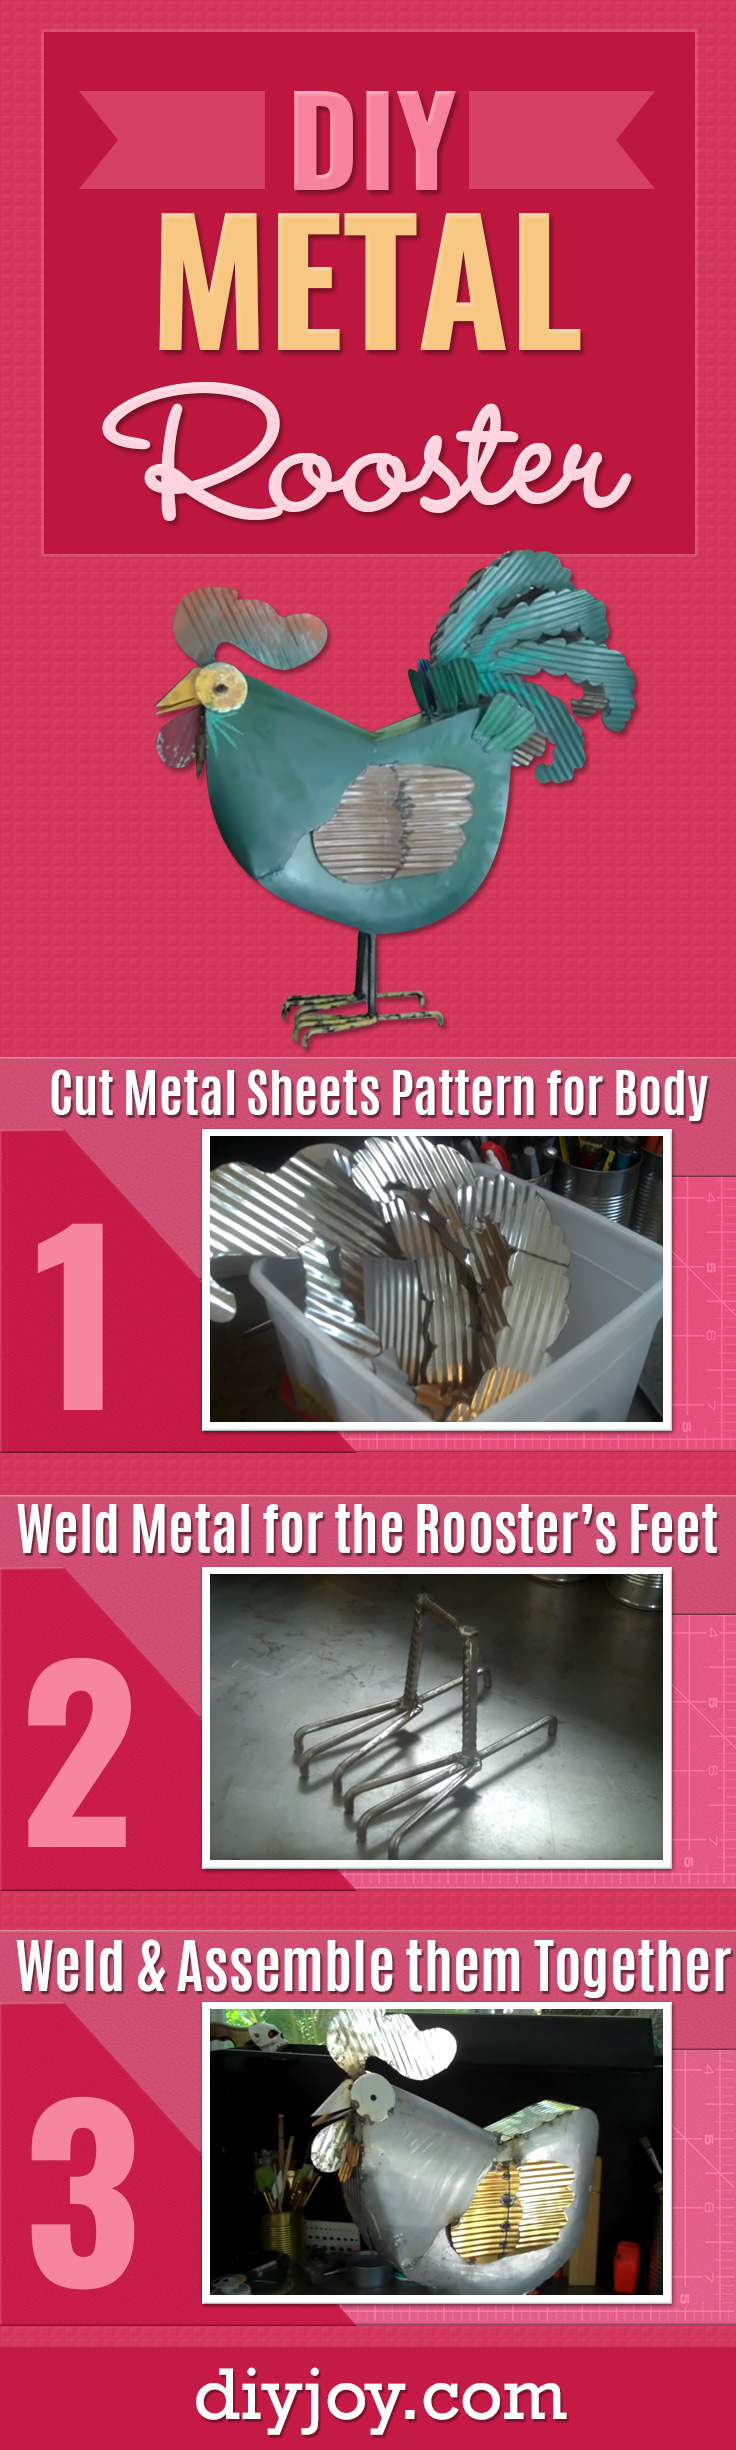 DIY Rustic Decor - DIY Farmhouse Decor Ideas for the Home - Metal Rooster Tutorial - Cheap Kitchen Decorations and Best DIY Christmas Gifts